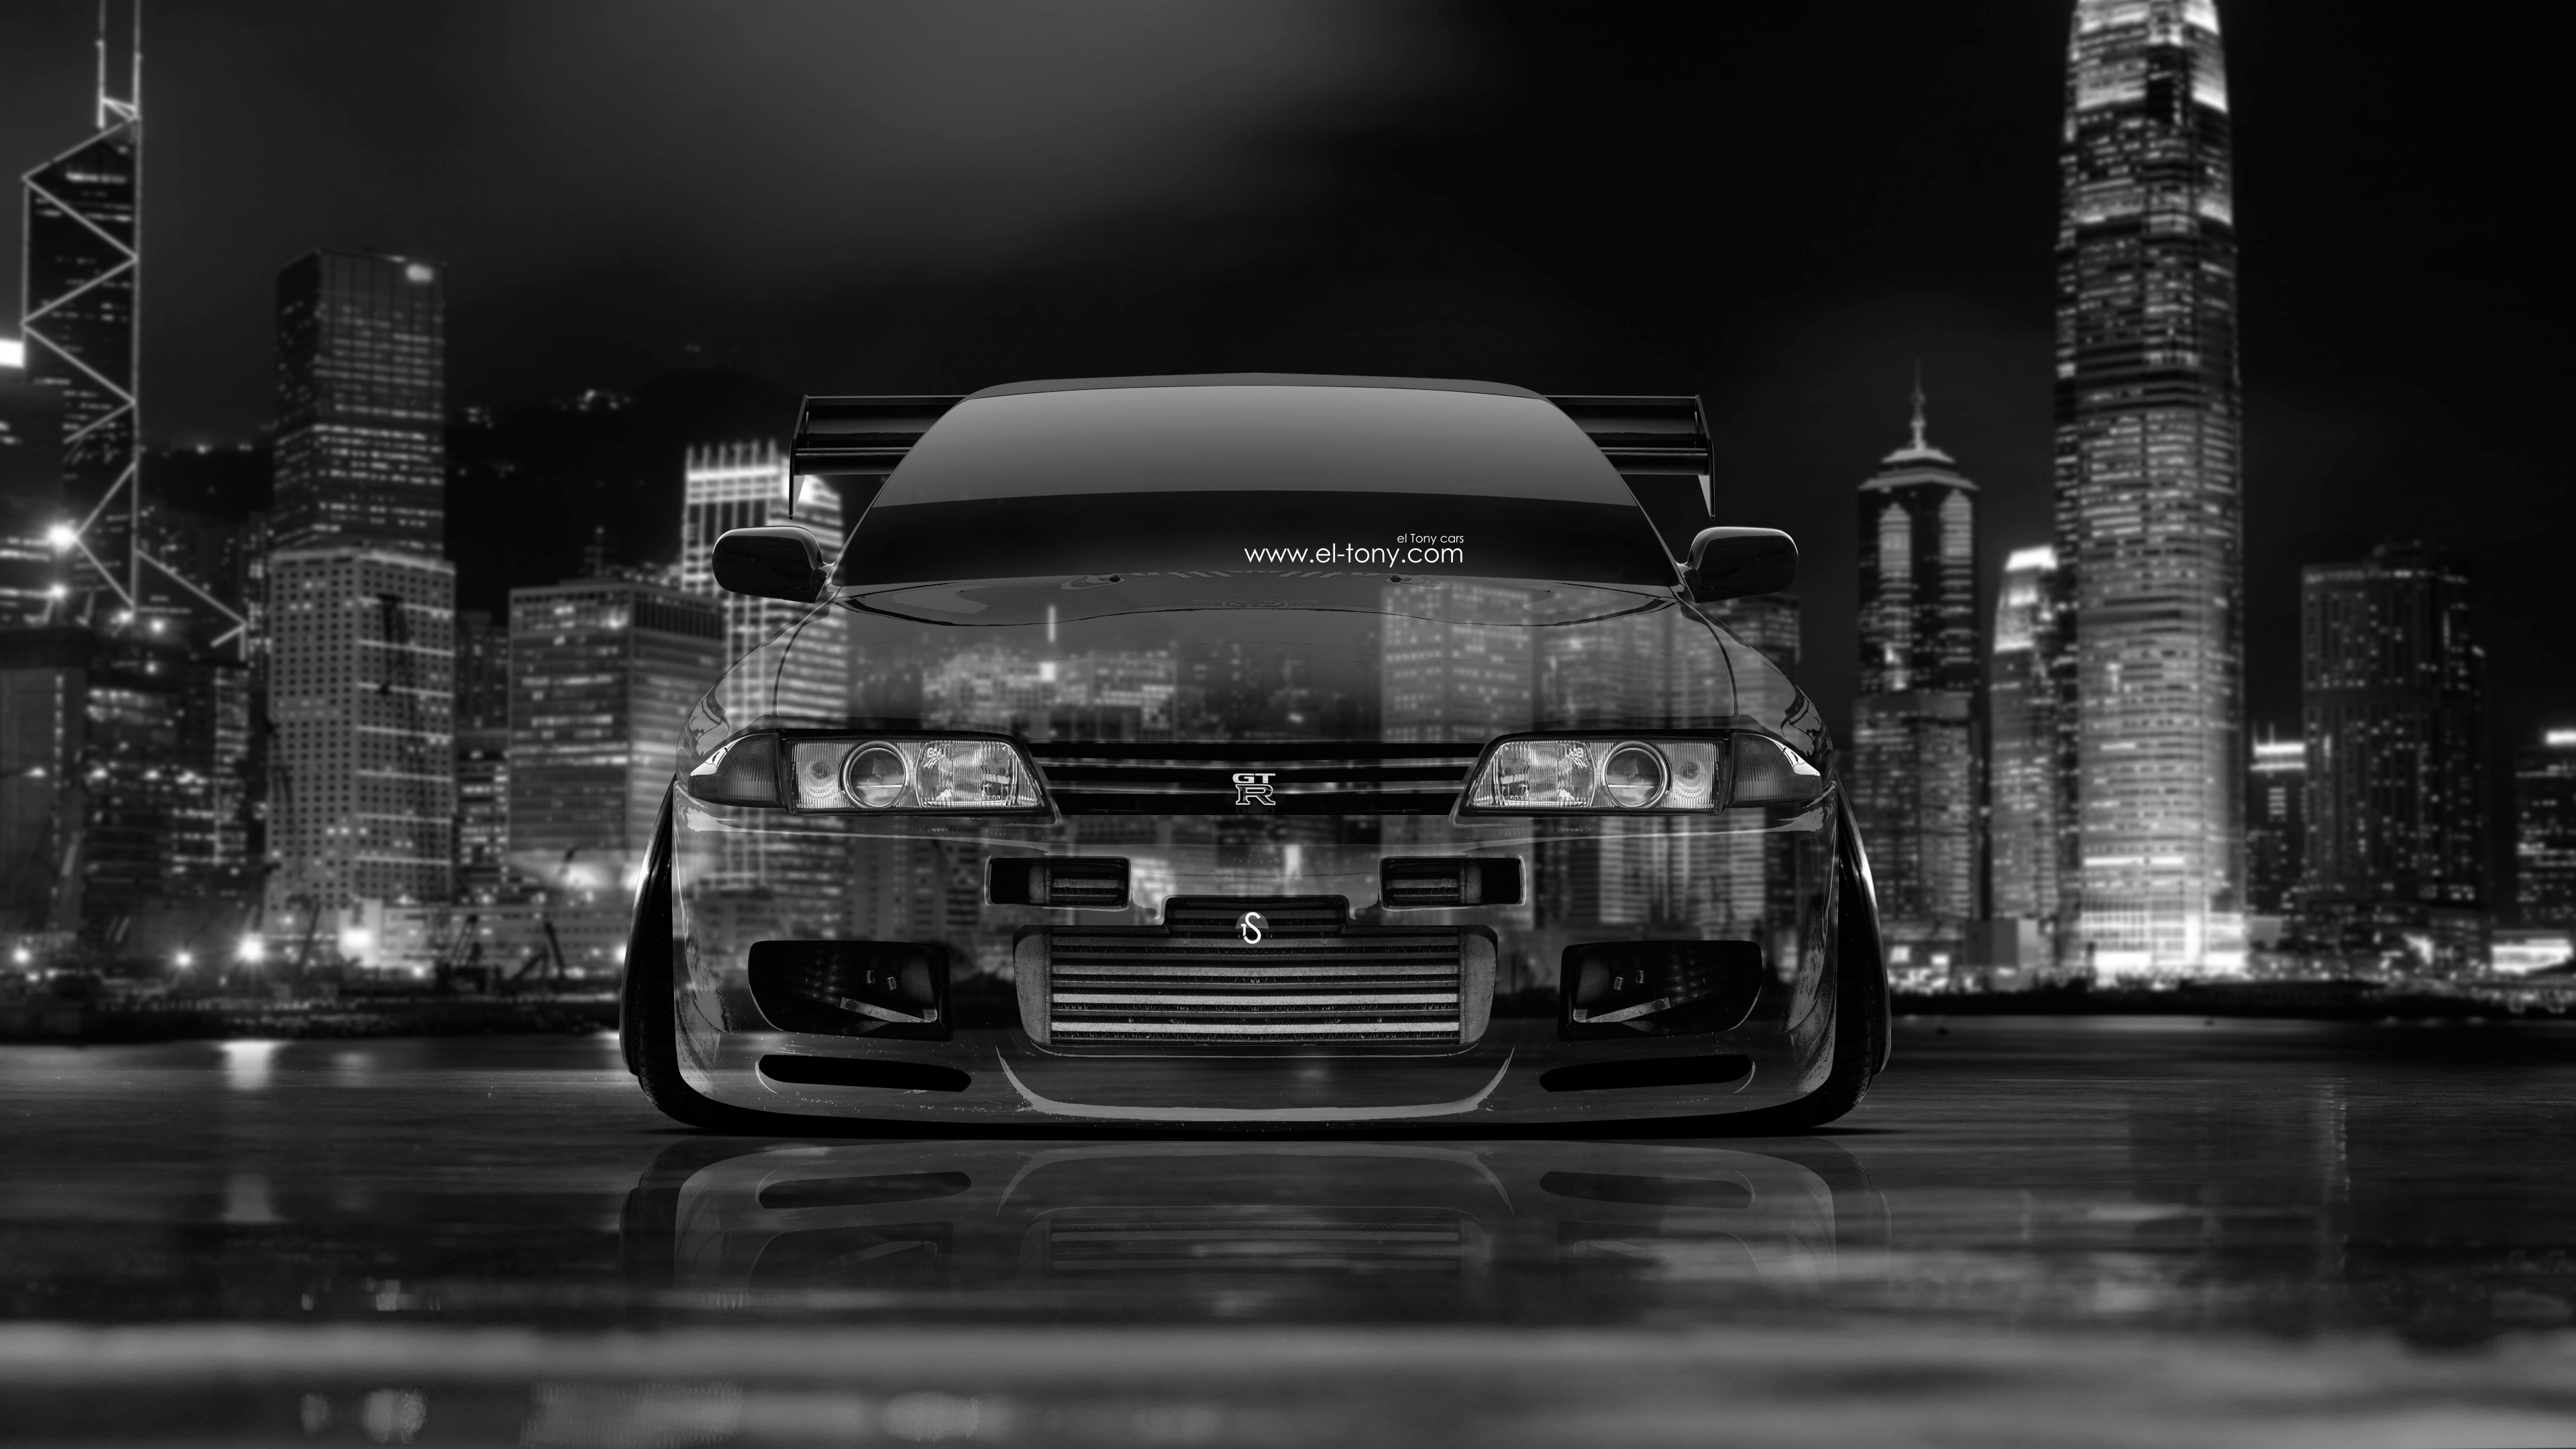 Captivating Exceptionnel Nissan Skyline GTR R32 JDM Front Crystal City